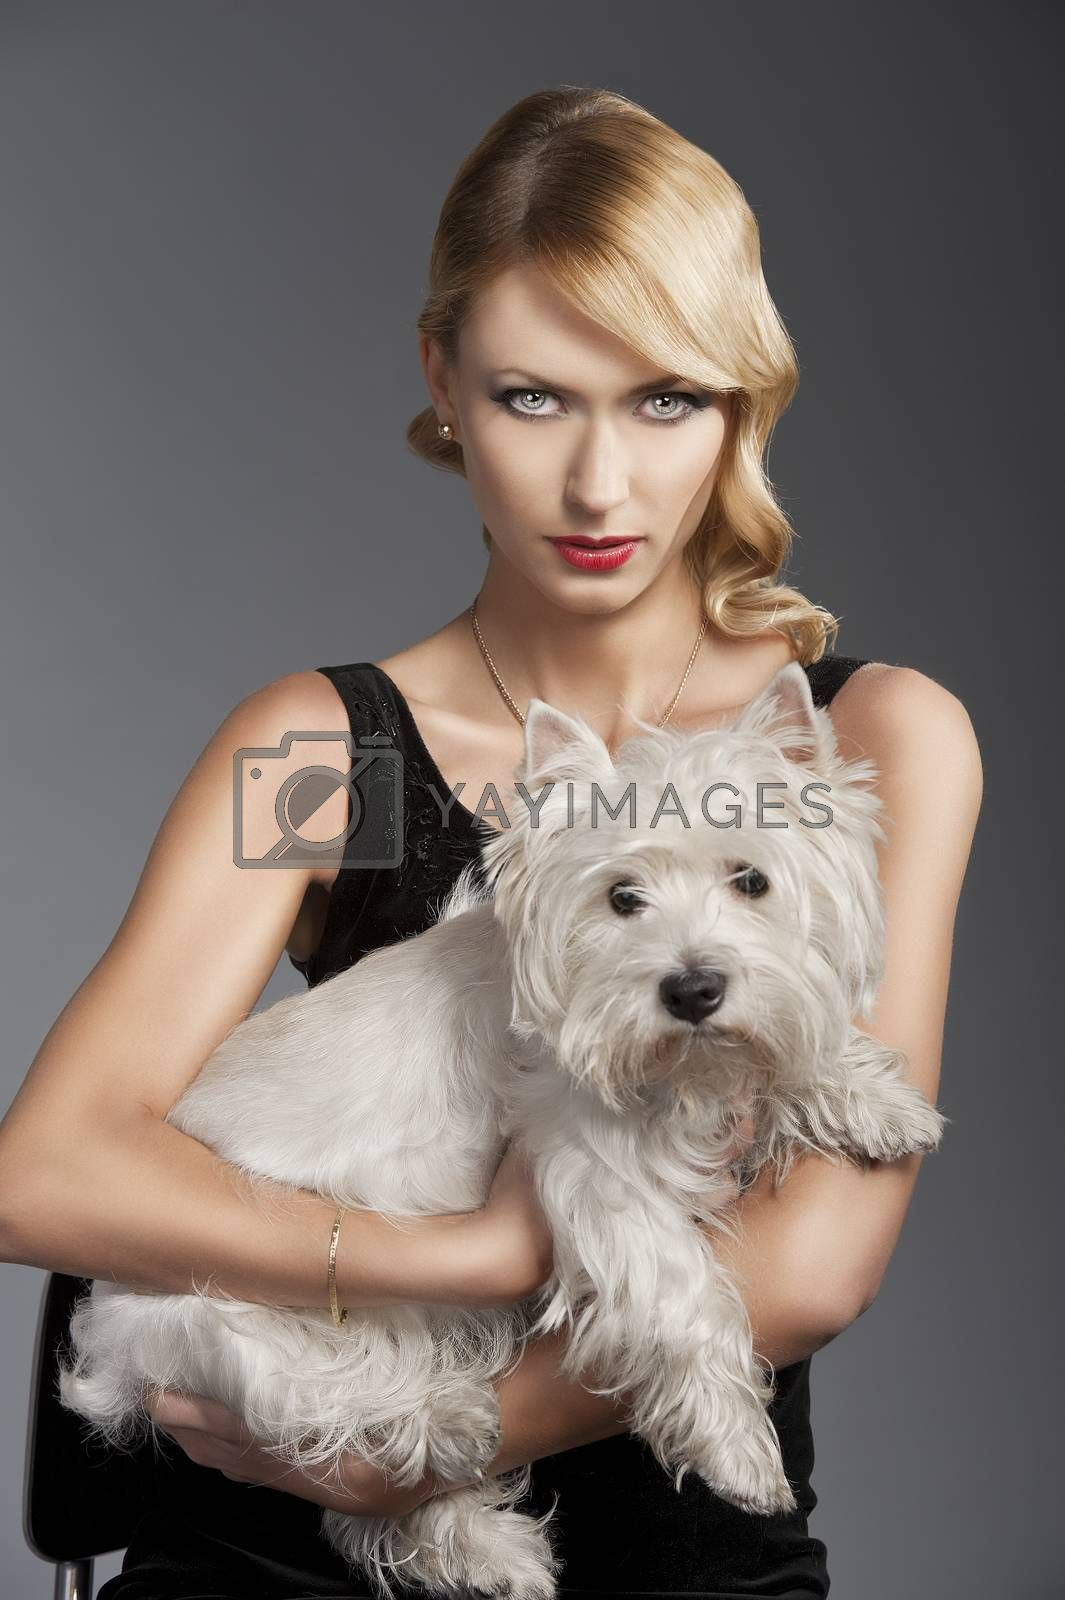 Royalty free image of old fashion blond girl,she has a dog in her arms by fotoCD